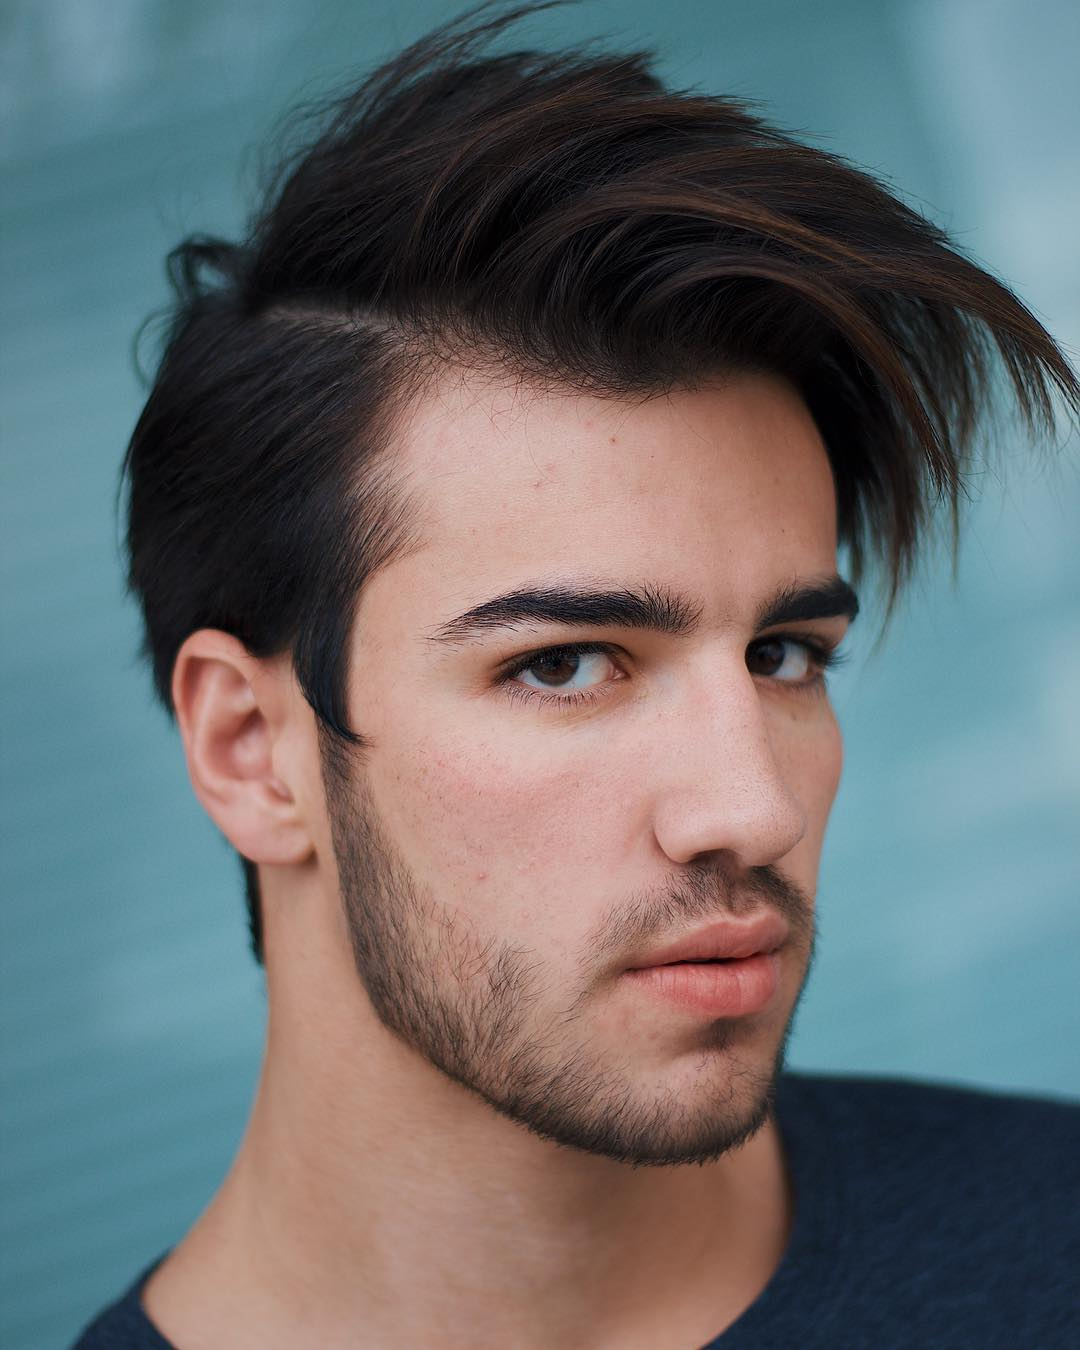 Mens Hairstyle Medium Length: Latest Men's Hairstyles 2018